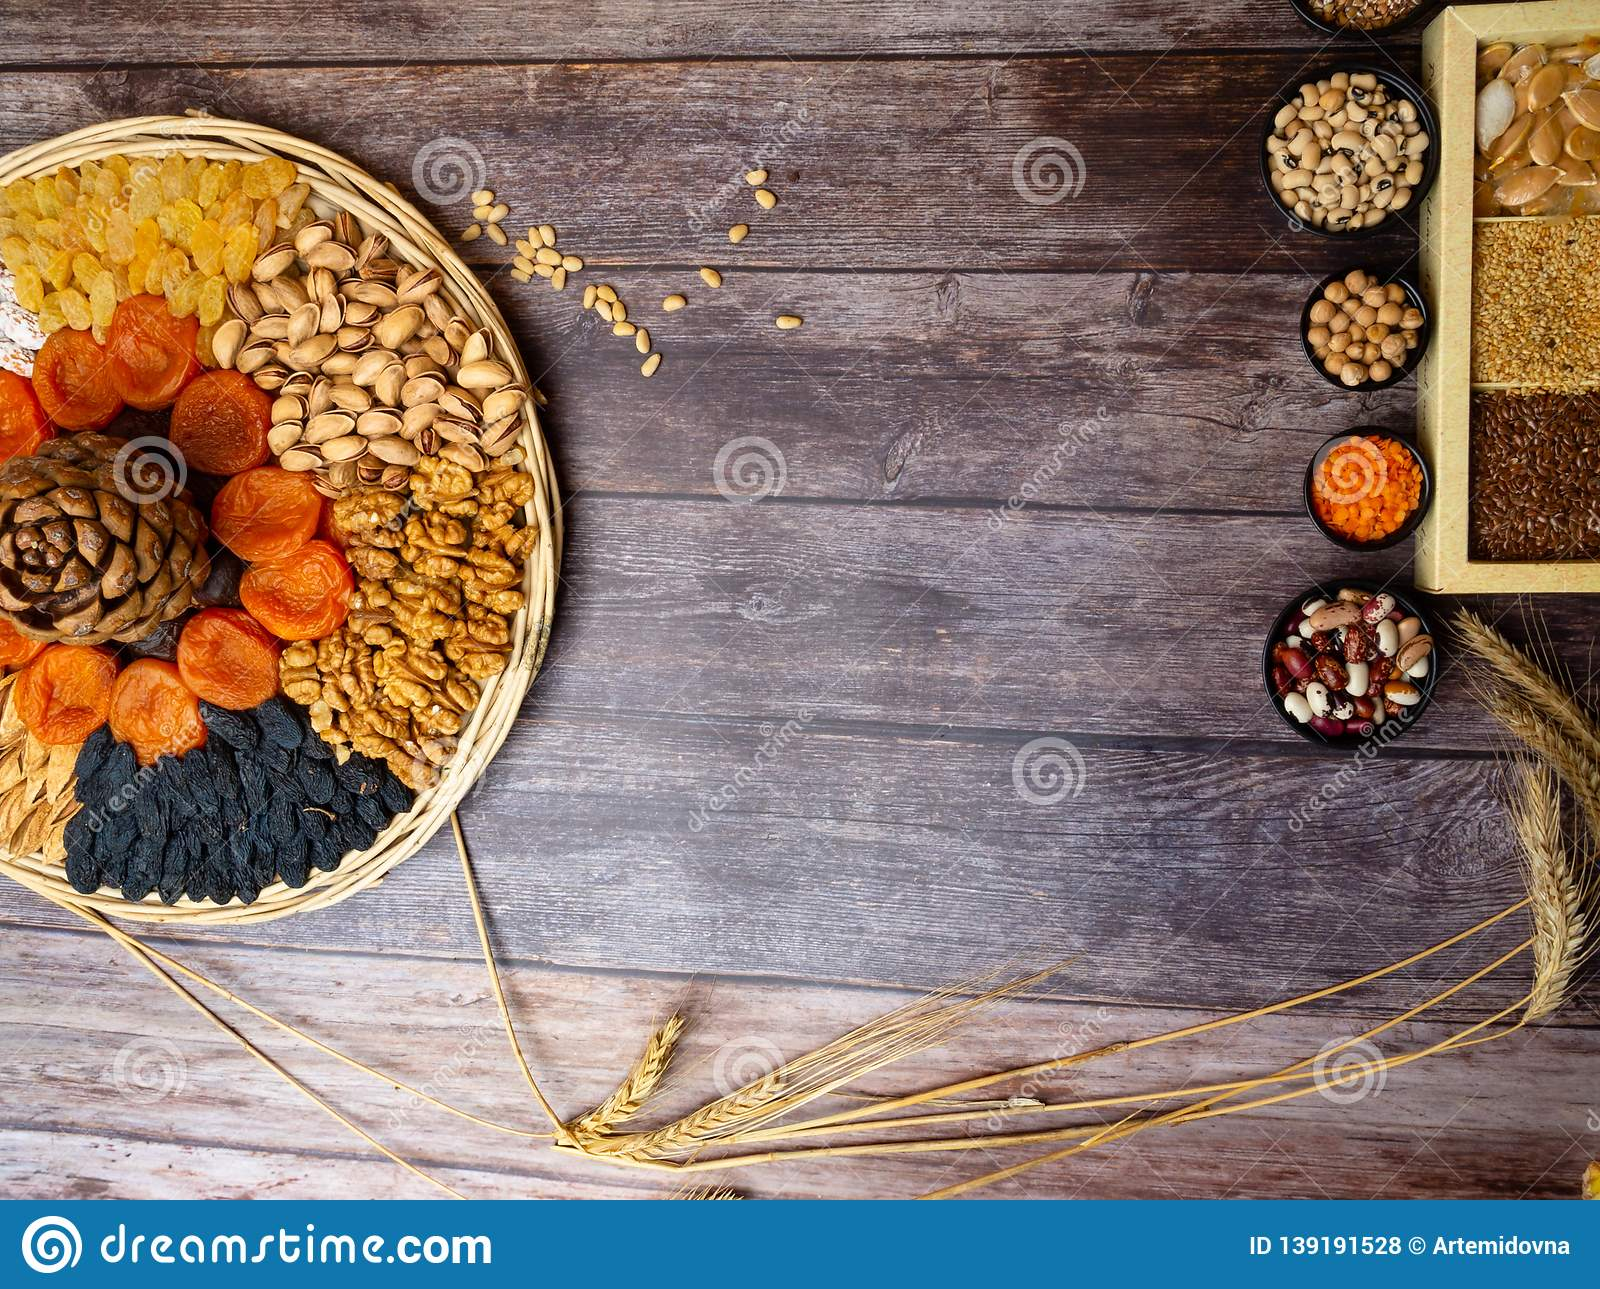 nuts seeds dried apricot raisin, cereal food high in antioxidants, anthocyanins, smart carbs and vitamins